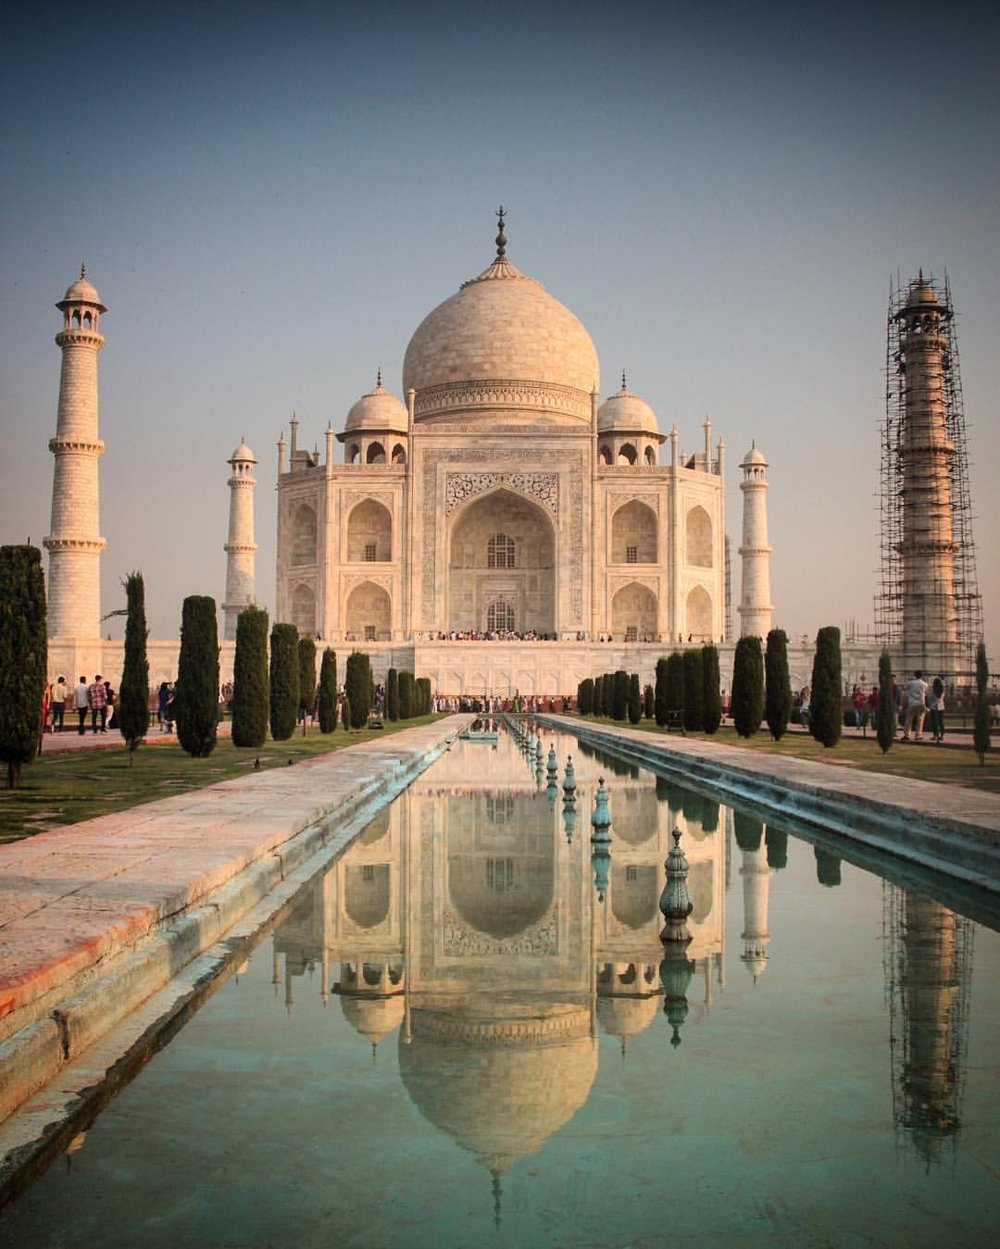 I only stepped a little bit in the reflecting pool for this shot. Taj photo salvo done :)